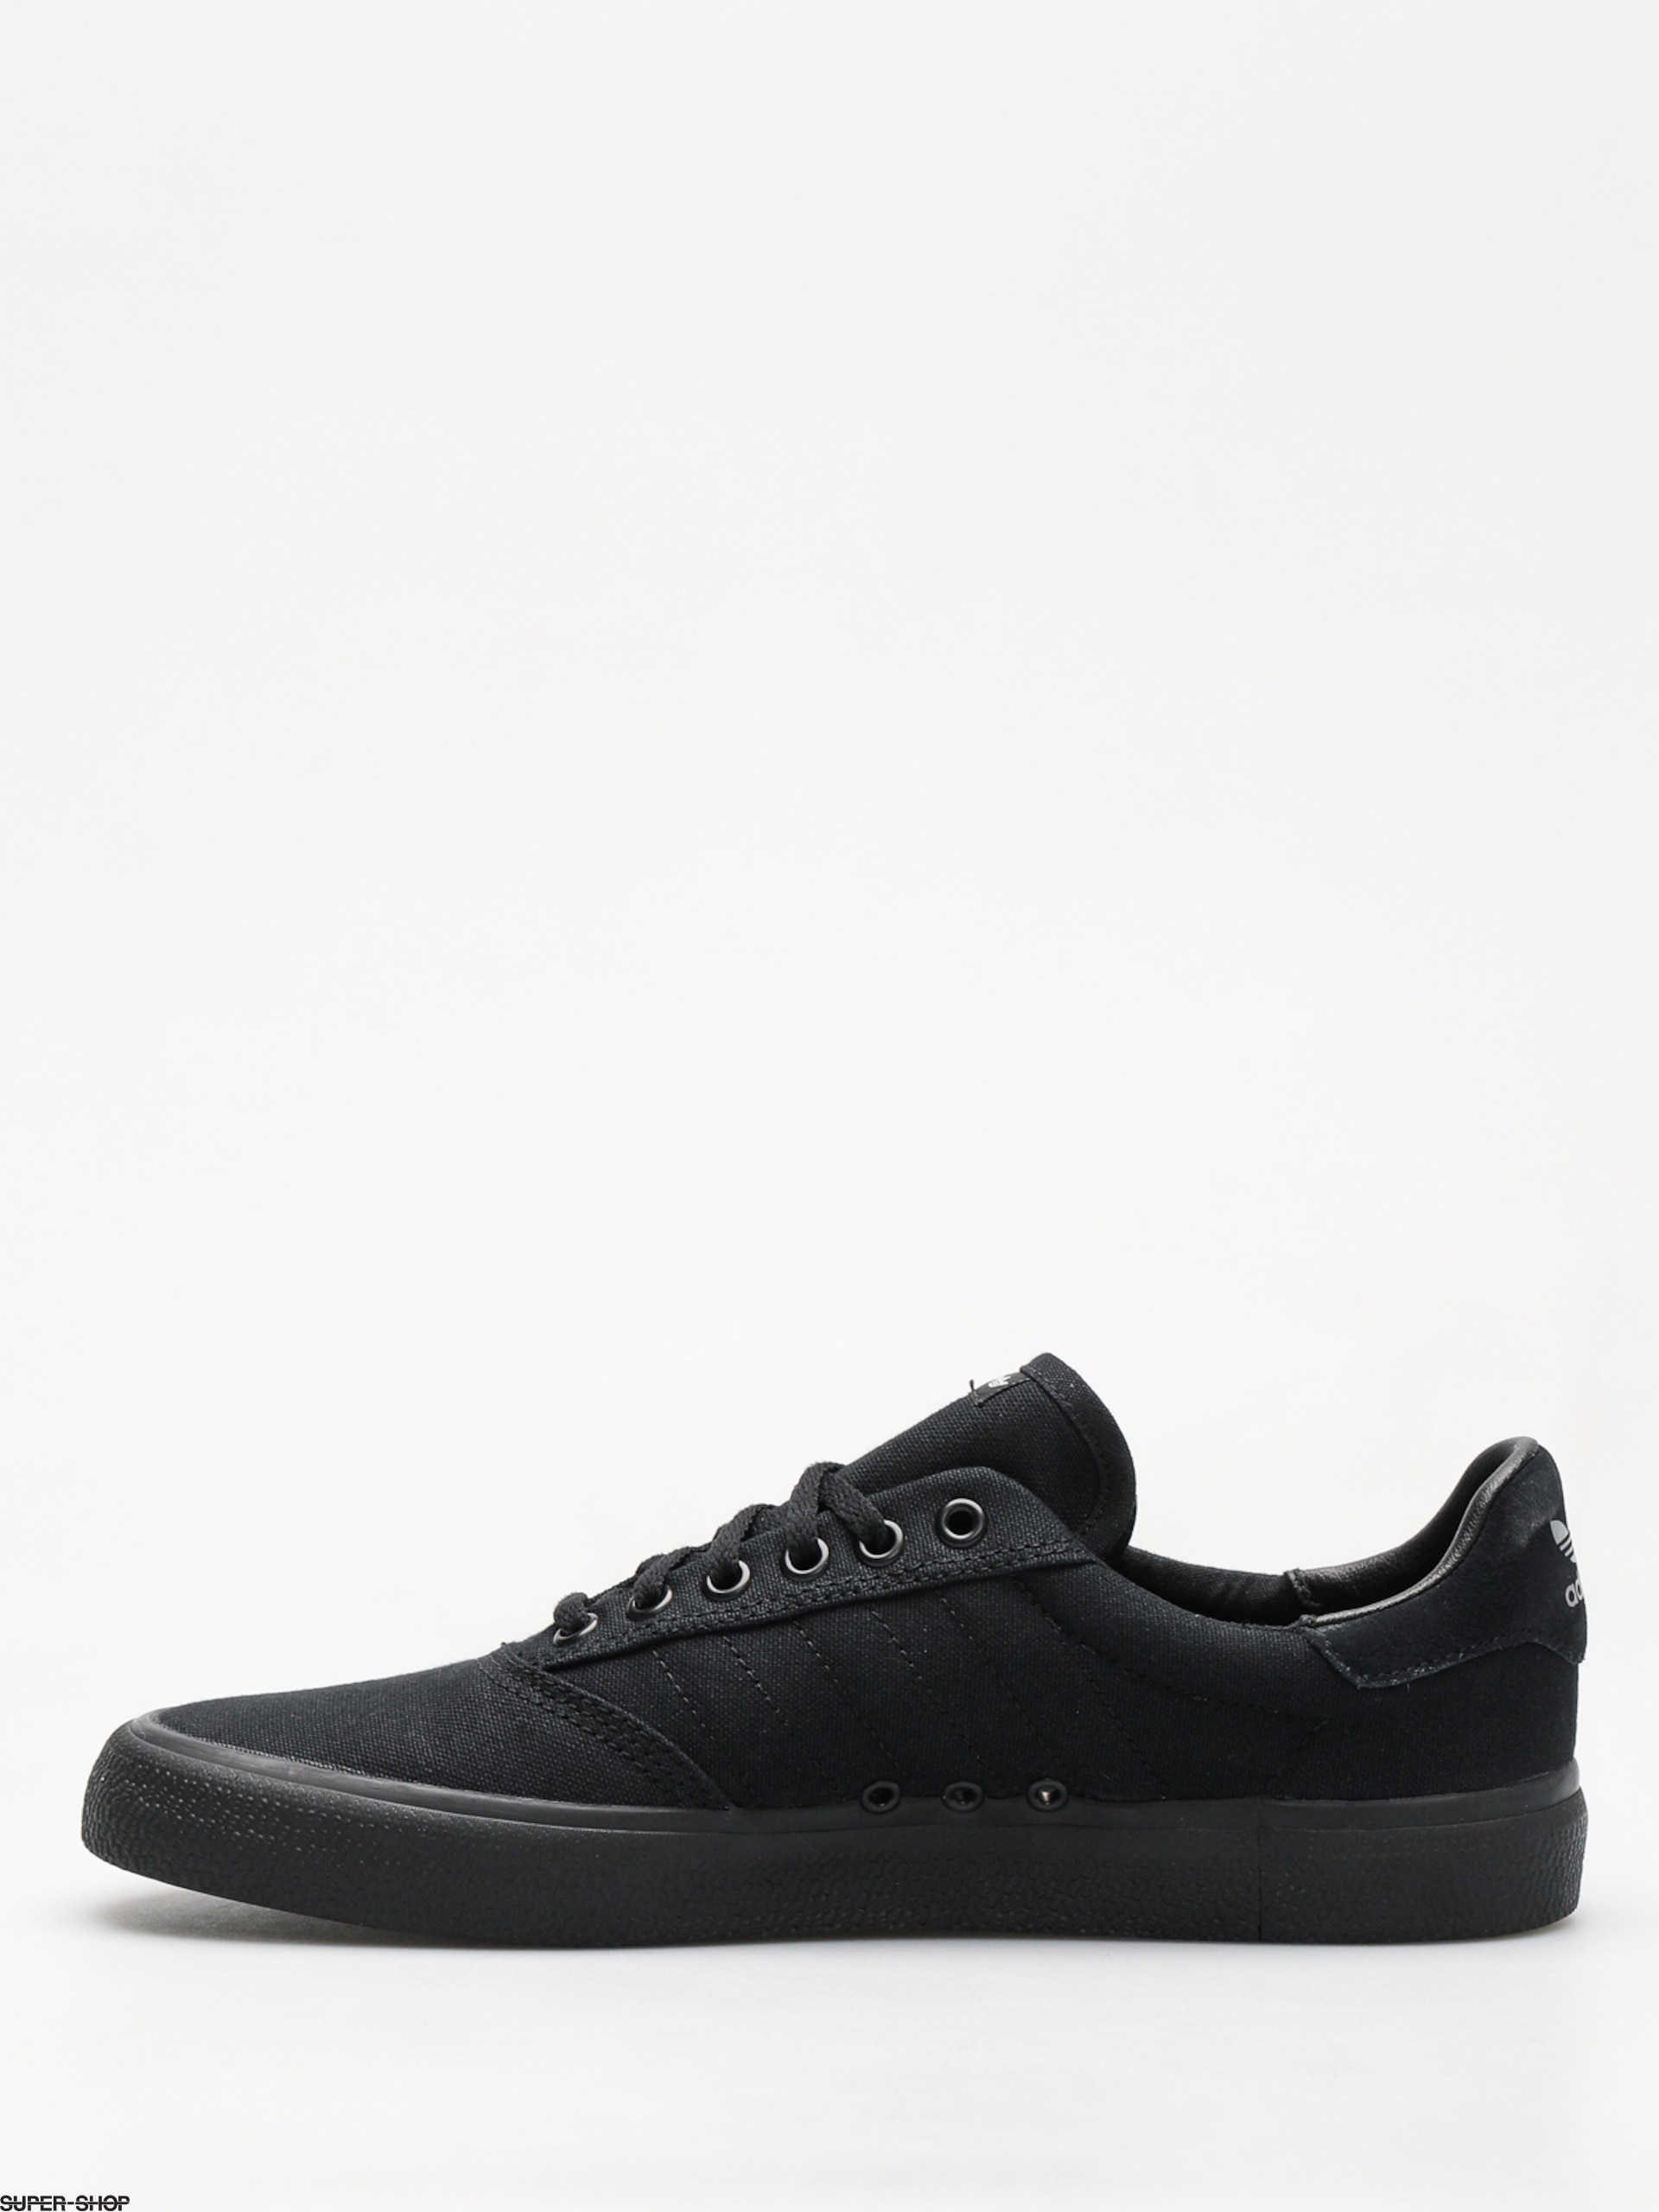 adidas Skateboarding 3MC Suede Shoes (core black white) buy